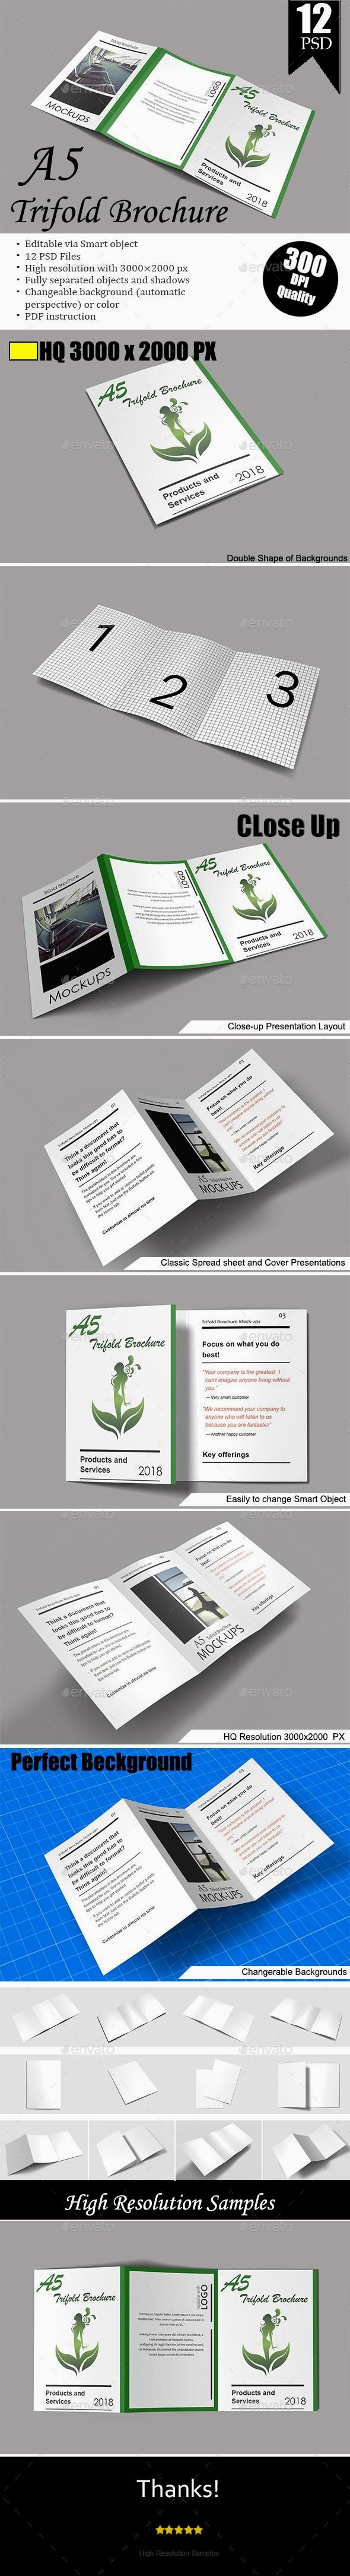 Download A5 Trifold Brochure Mockup Vol 1 Trifold Brochure Brochure Print Brochures Mockups